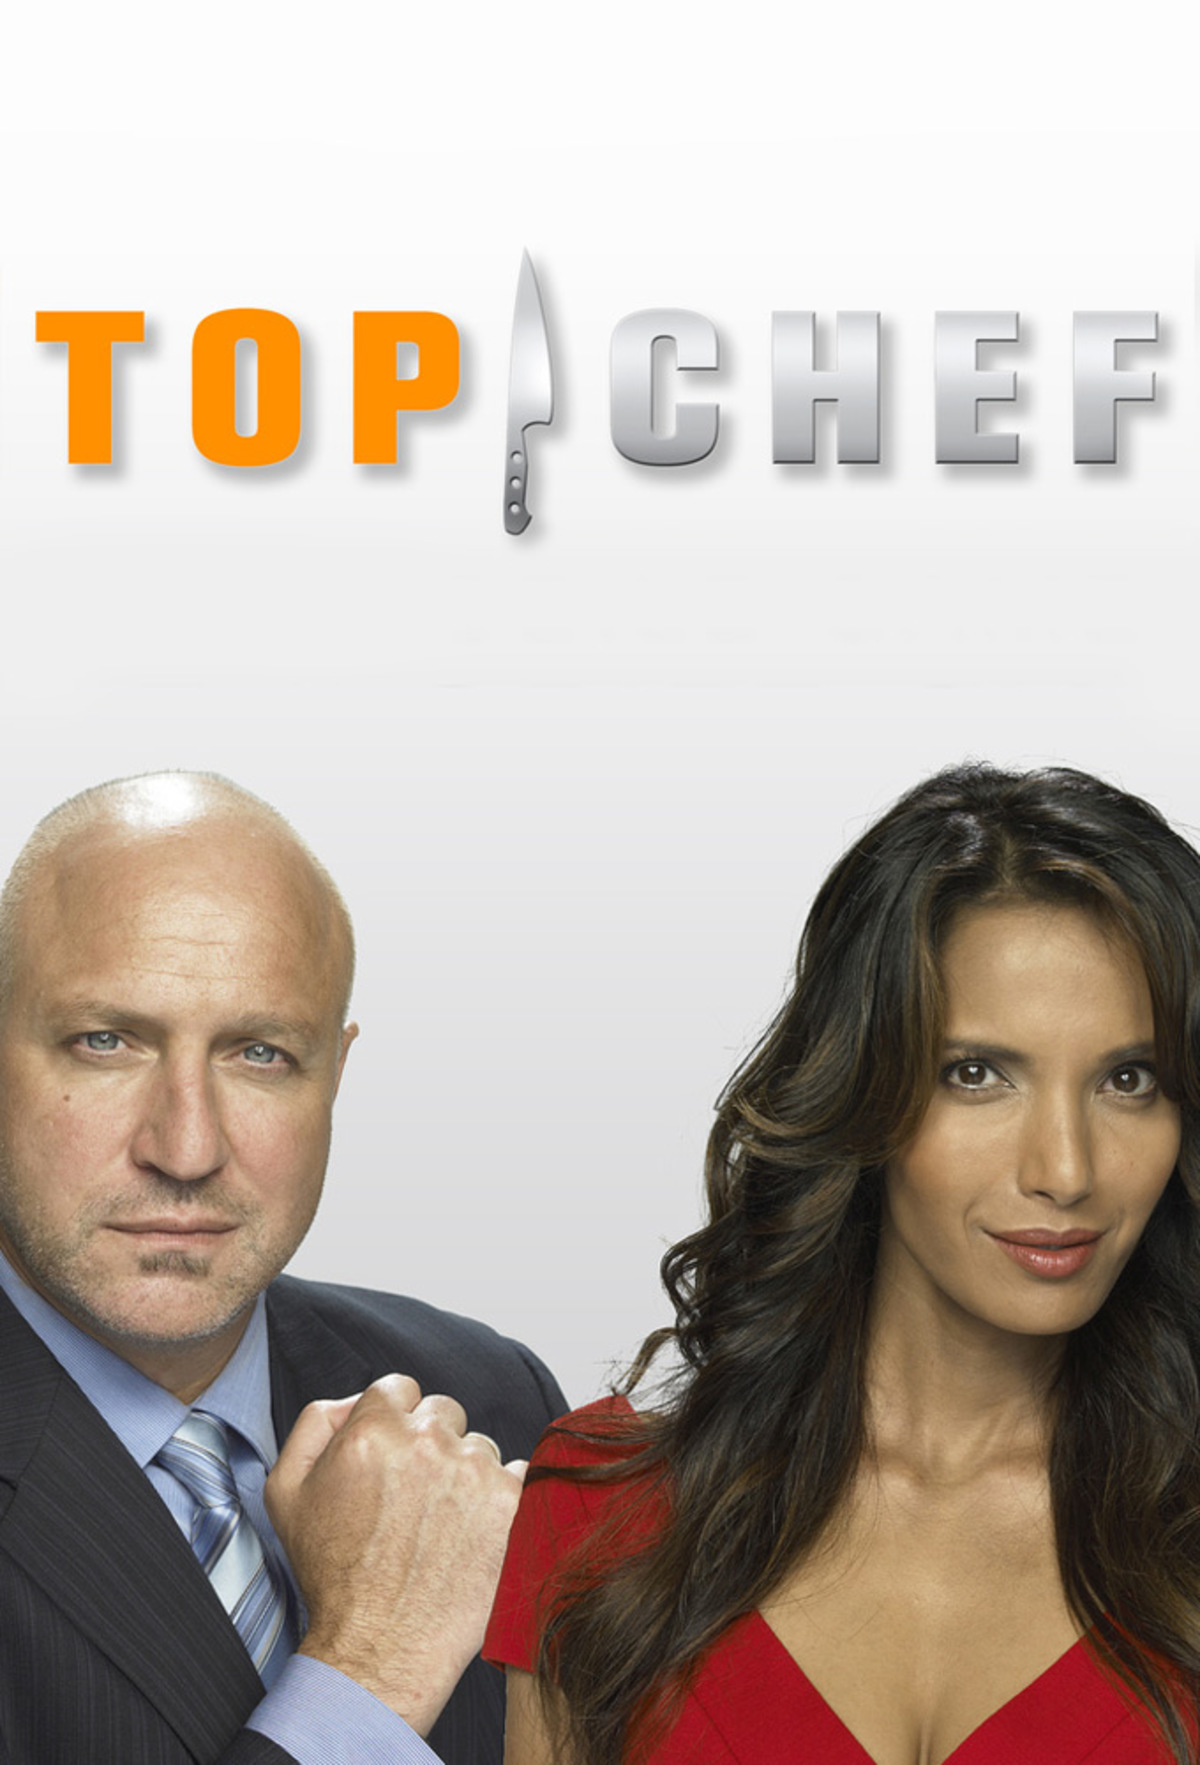 Top Chef - Season 17 Episode 8